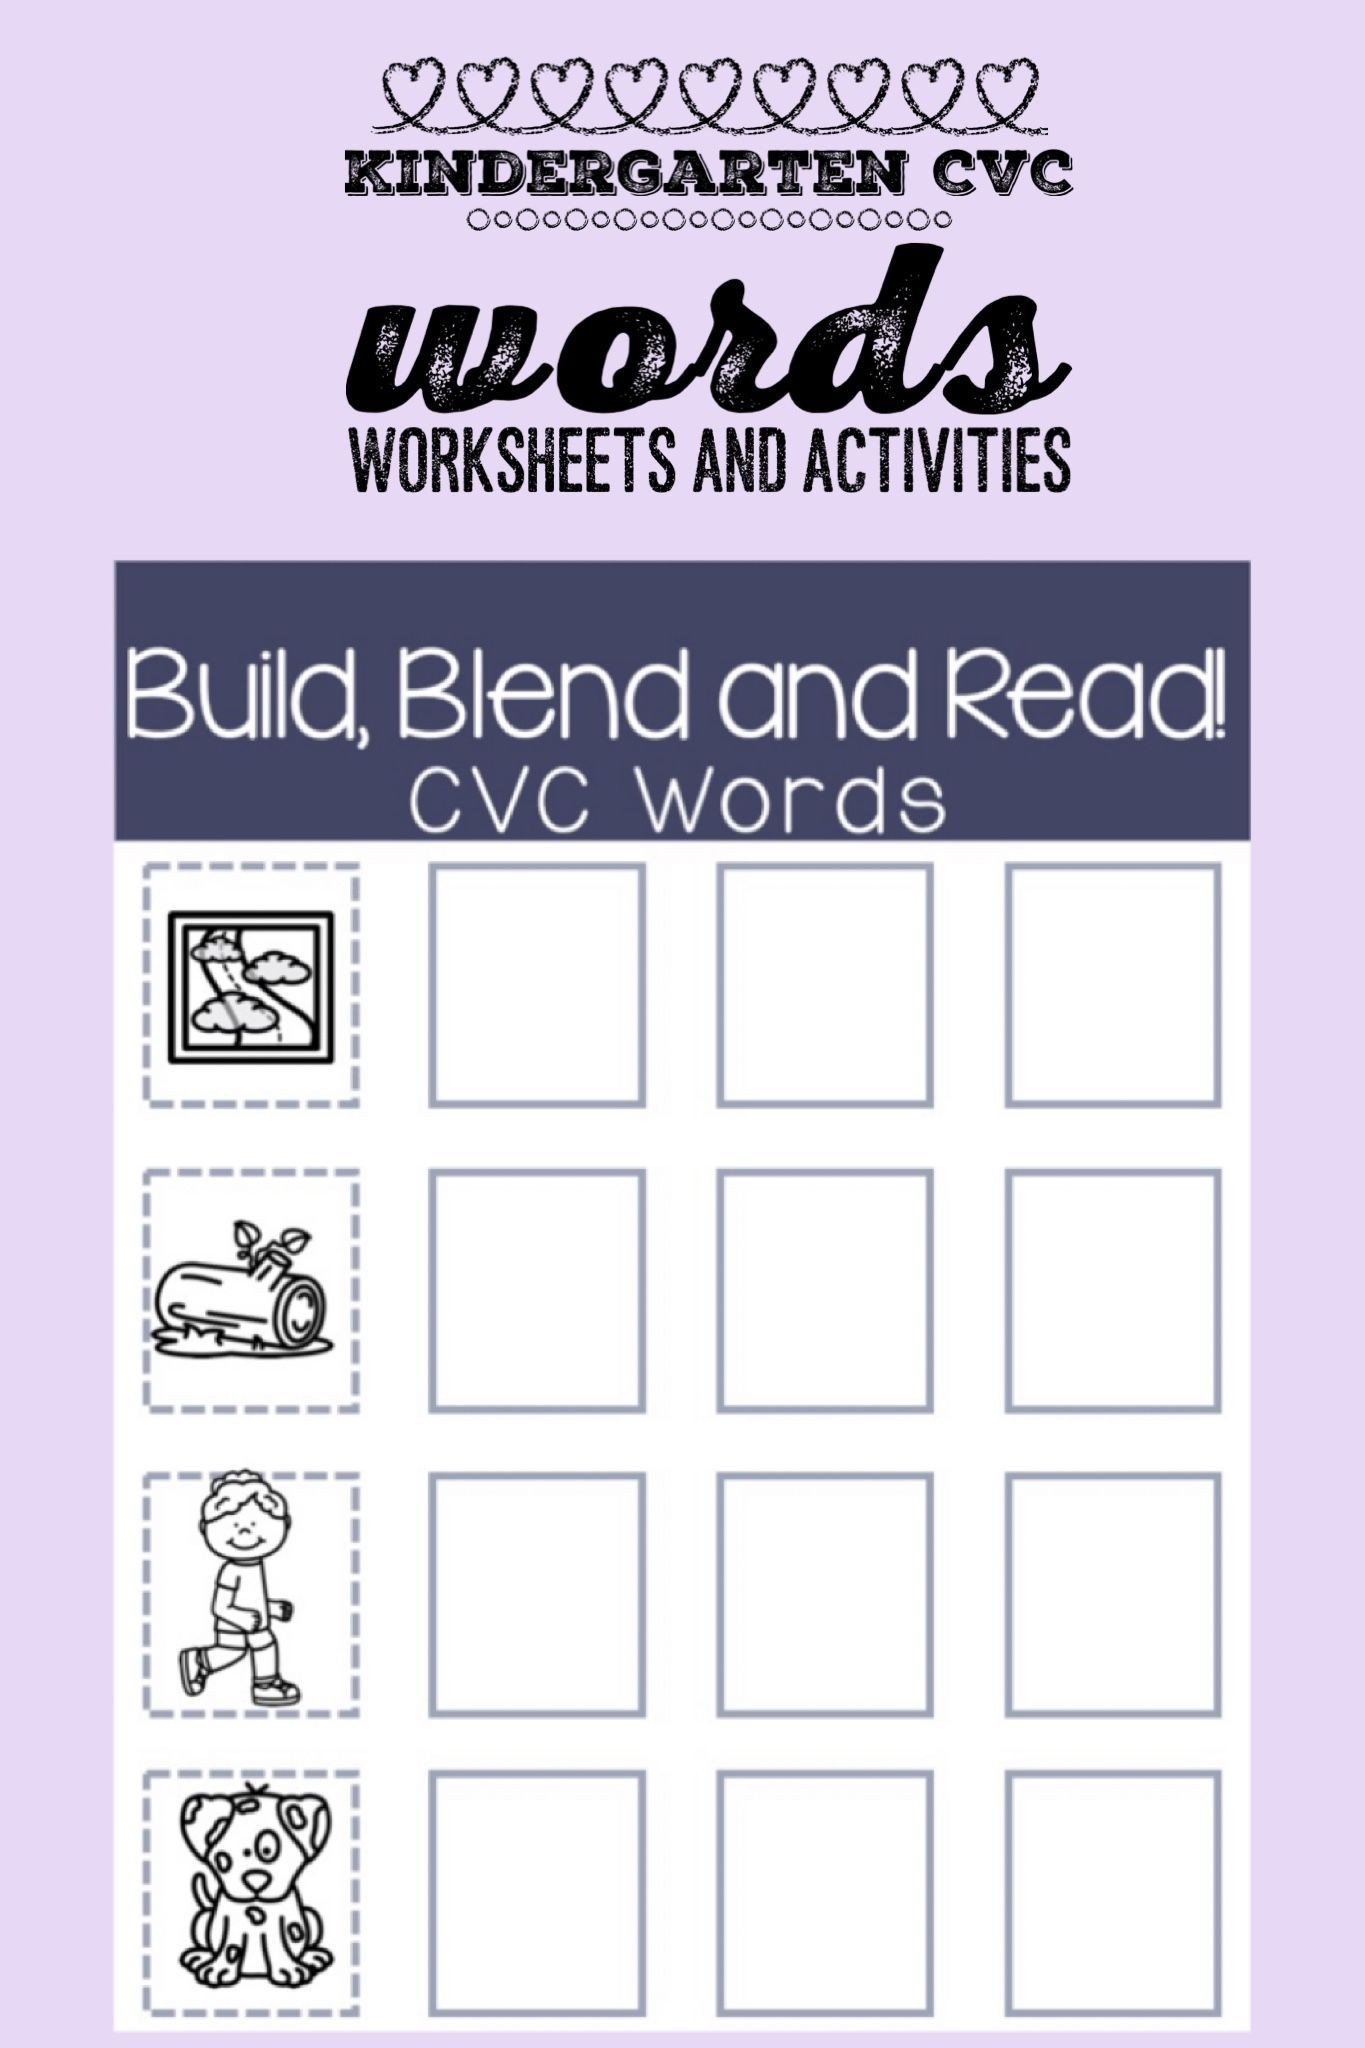 Segmenting Words Worksheets Kindergarten Printable Worksheets and Activities to Practice